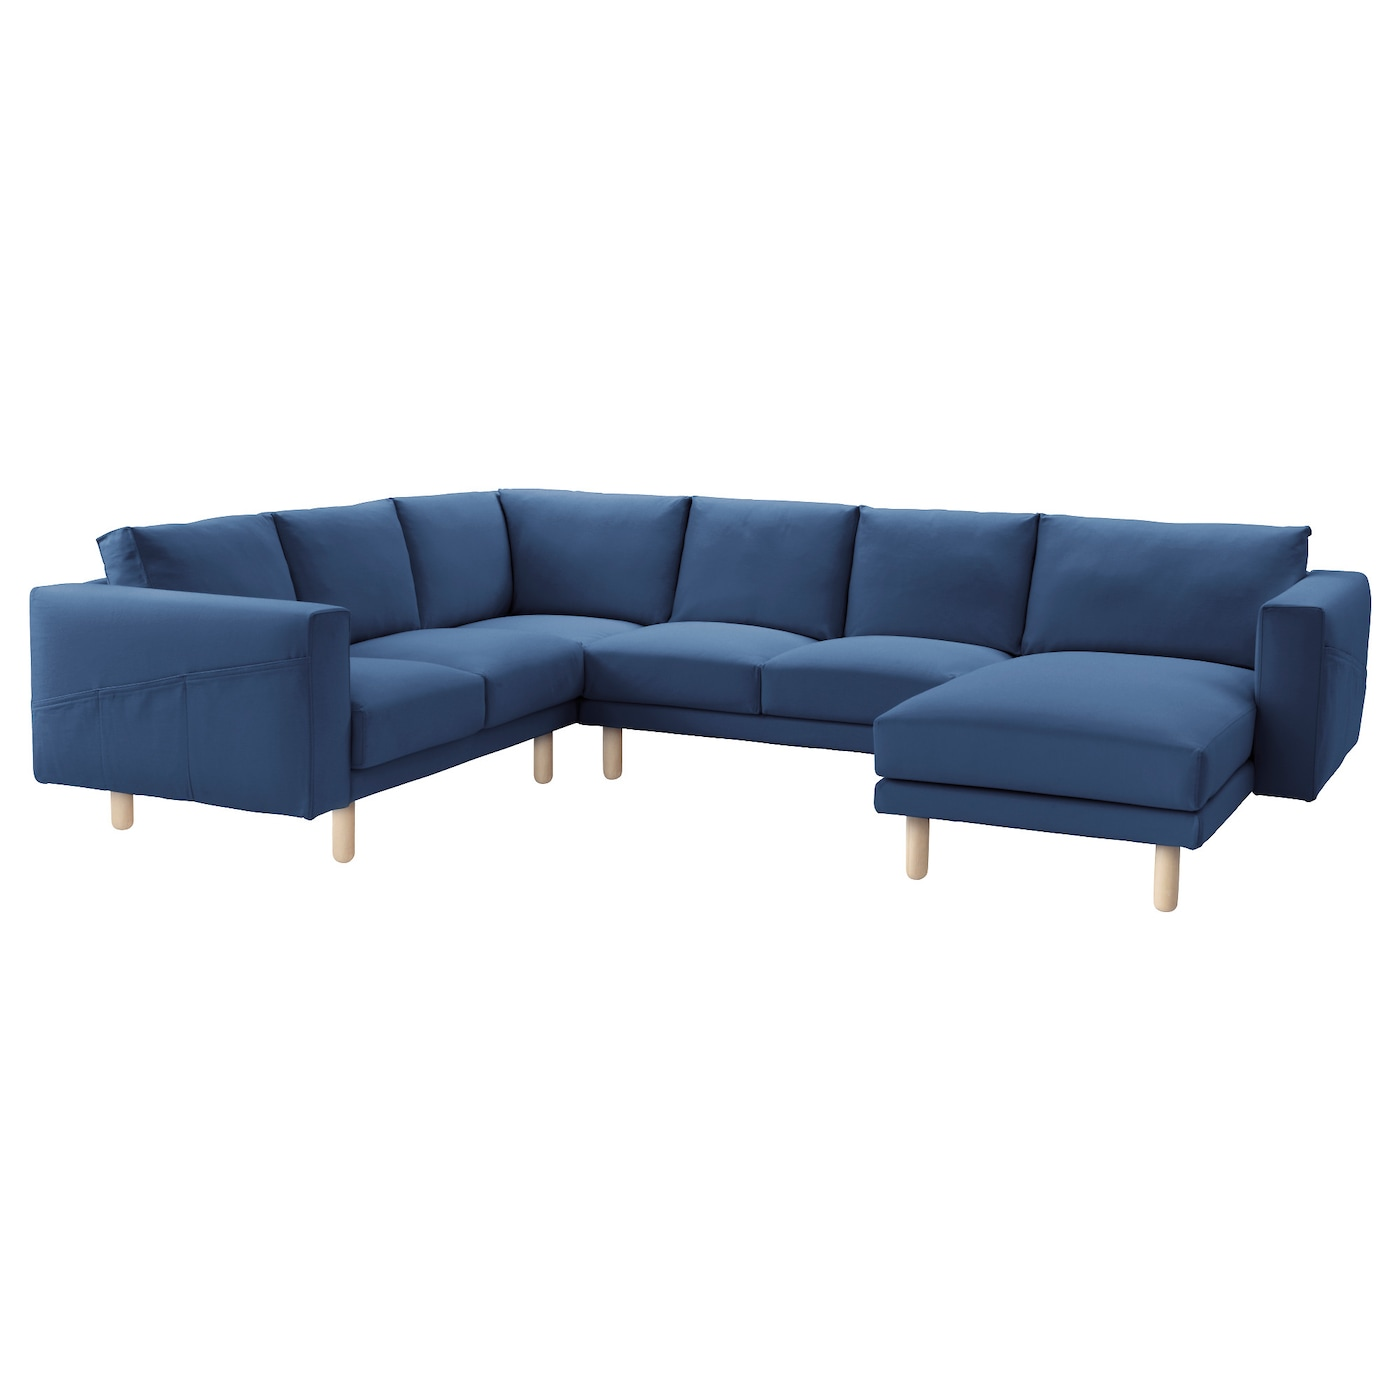 NORSBORG Cover corner sofa 2 2 chaise longue Gräsbo dark blue IKEA